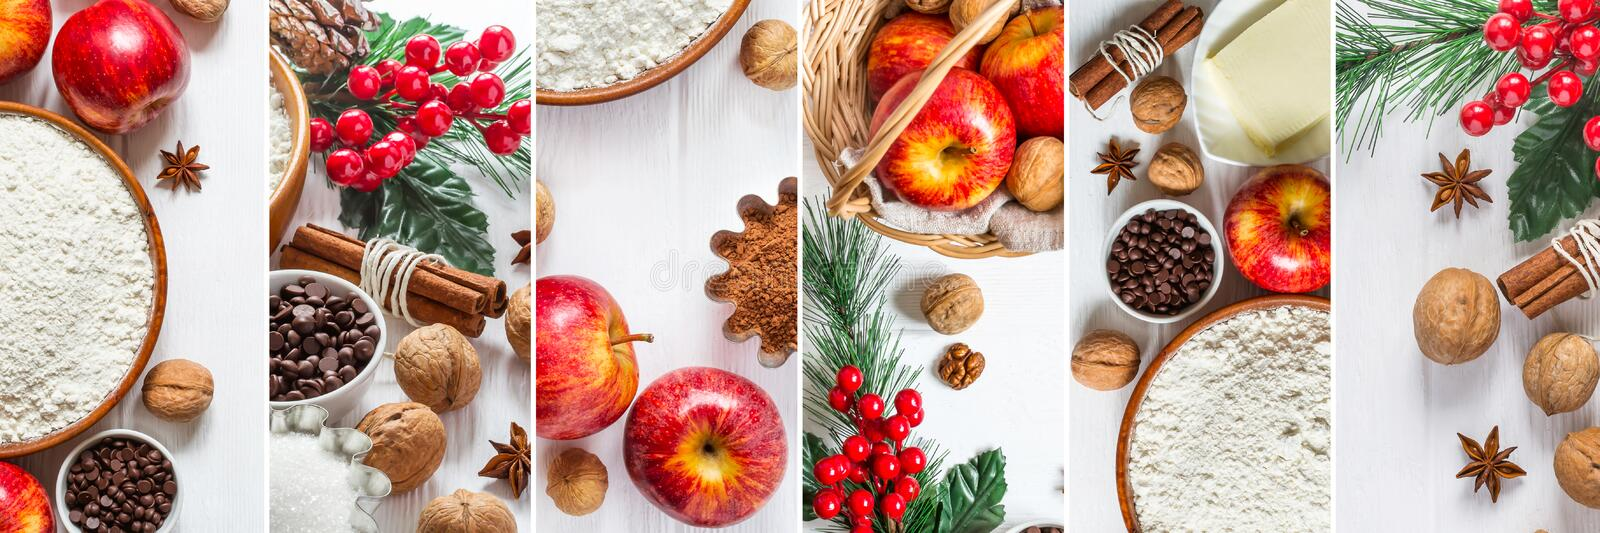 Christmas baking with apples collage stock photos